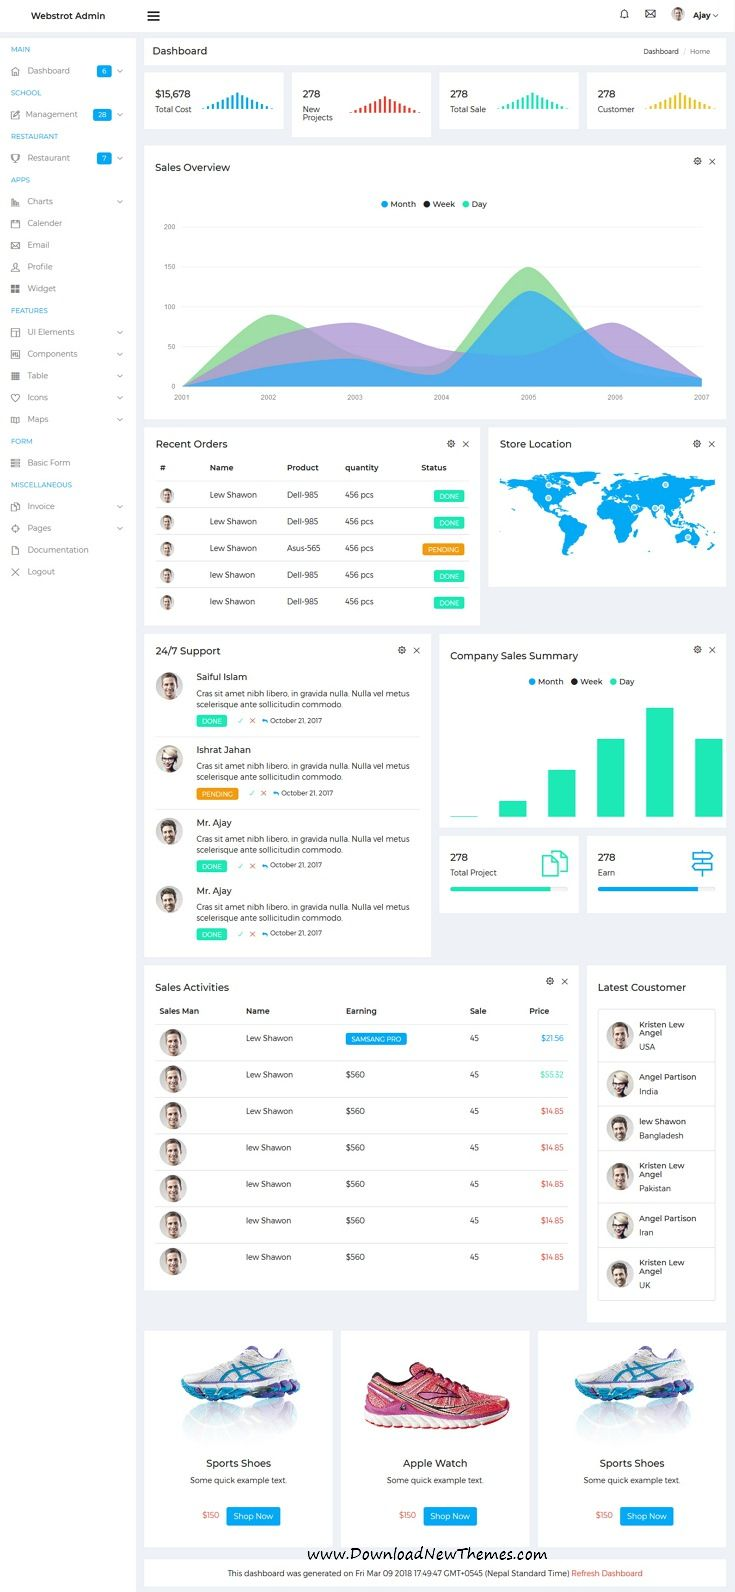 Webstrot is clean and modern design 10+ responsive bootstrap #dashboard template for custom #admin panels, CMS, CRM, SaaS, and web applications website in dark and light versions to live preview & download click on image or Visit  #admintemplate #admintheme